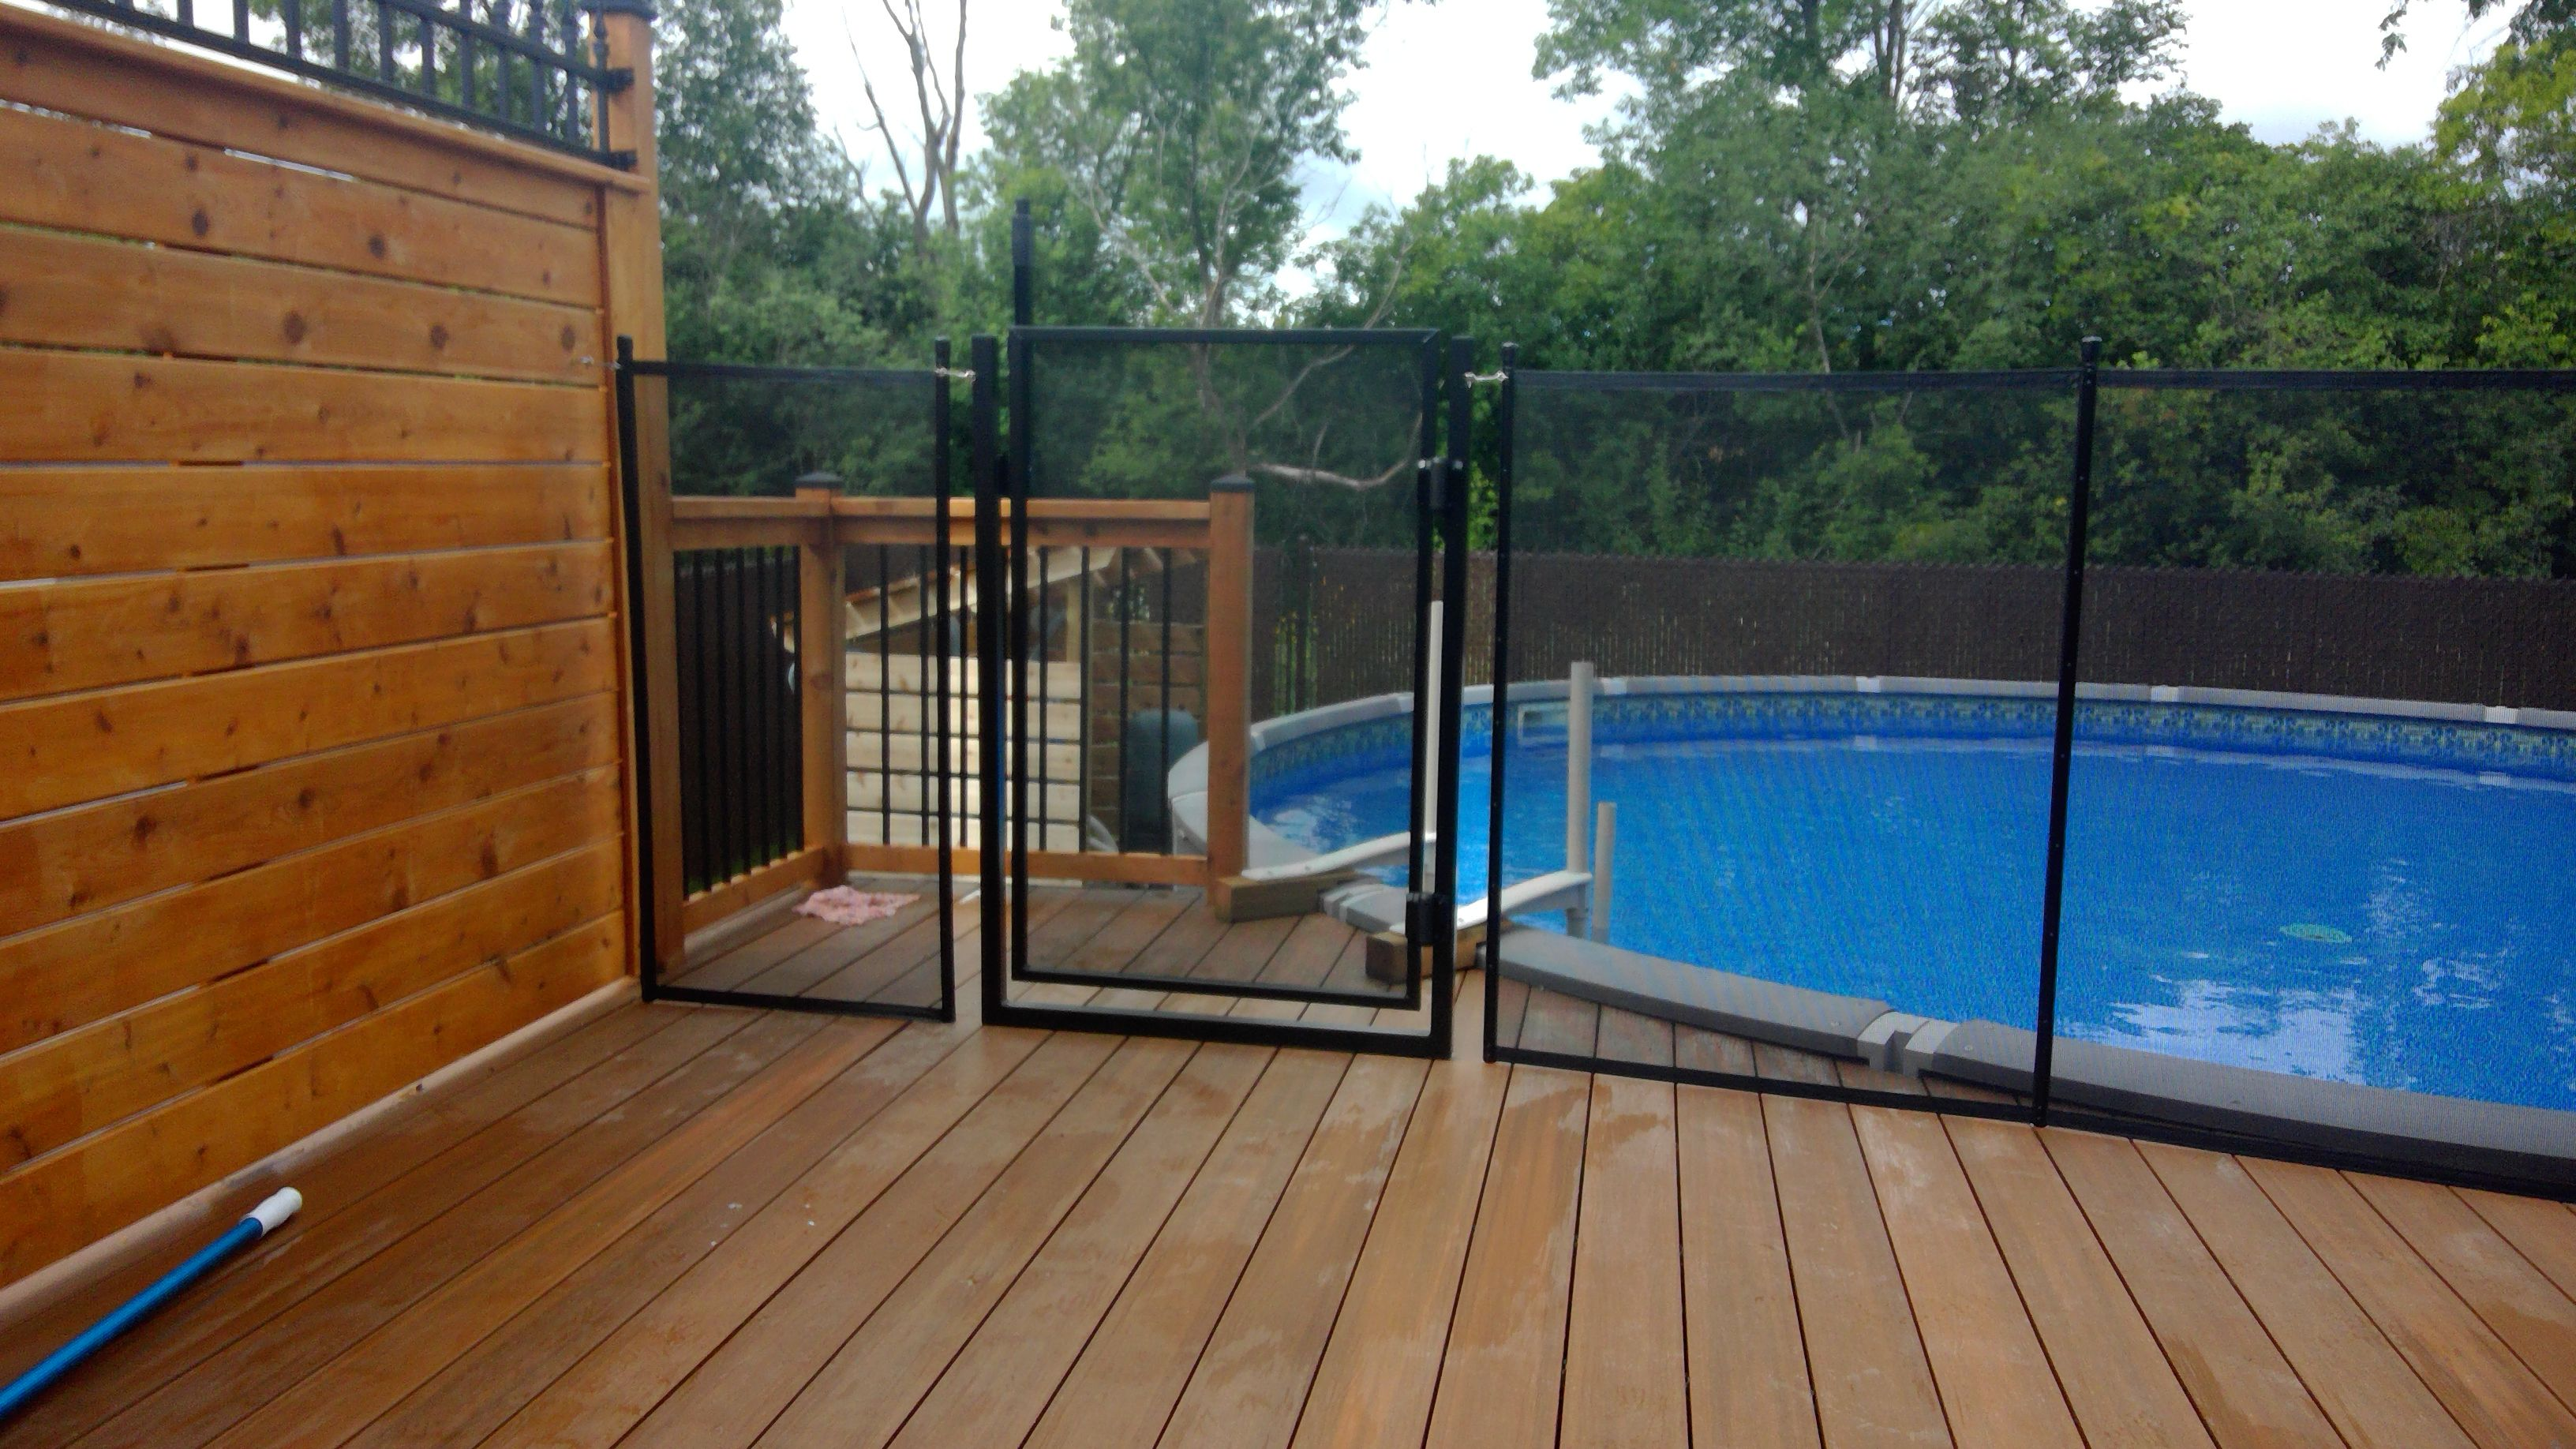 Child safe removable pool fence canadian leader in the